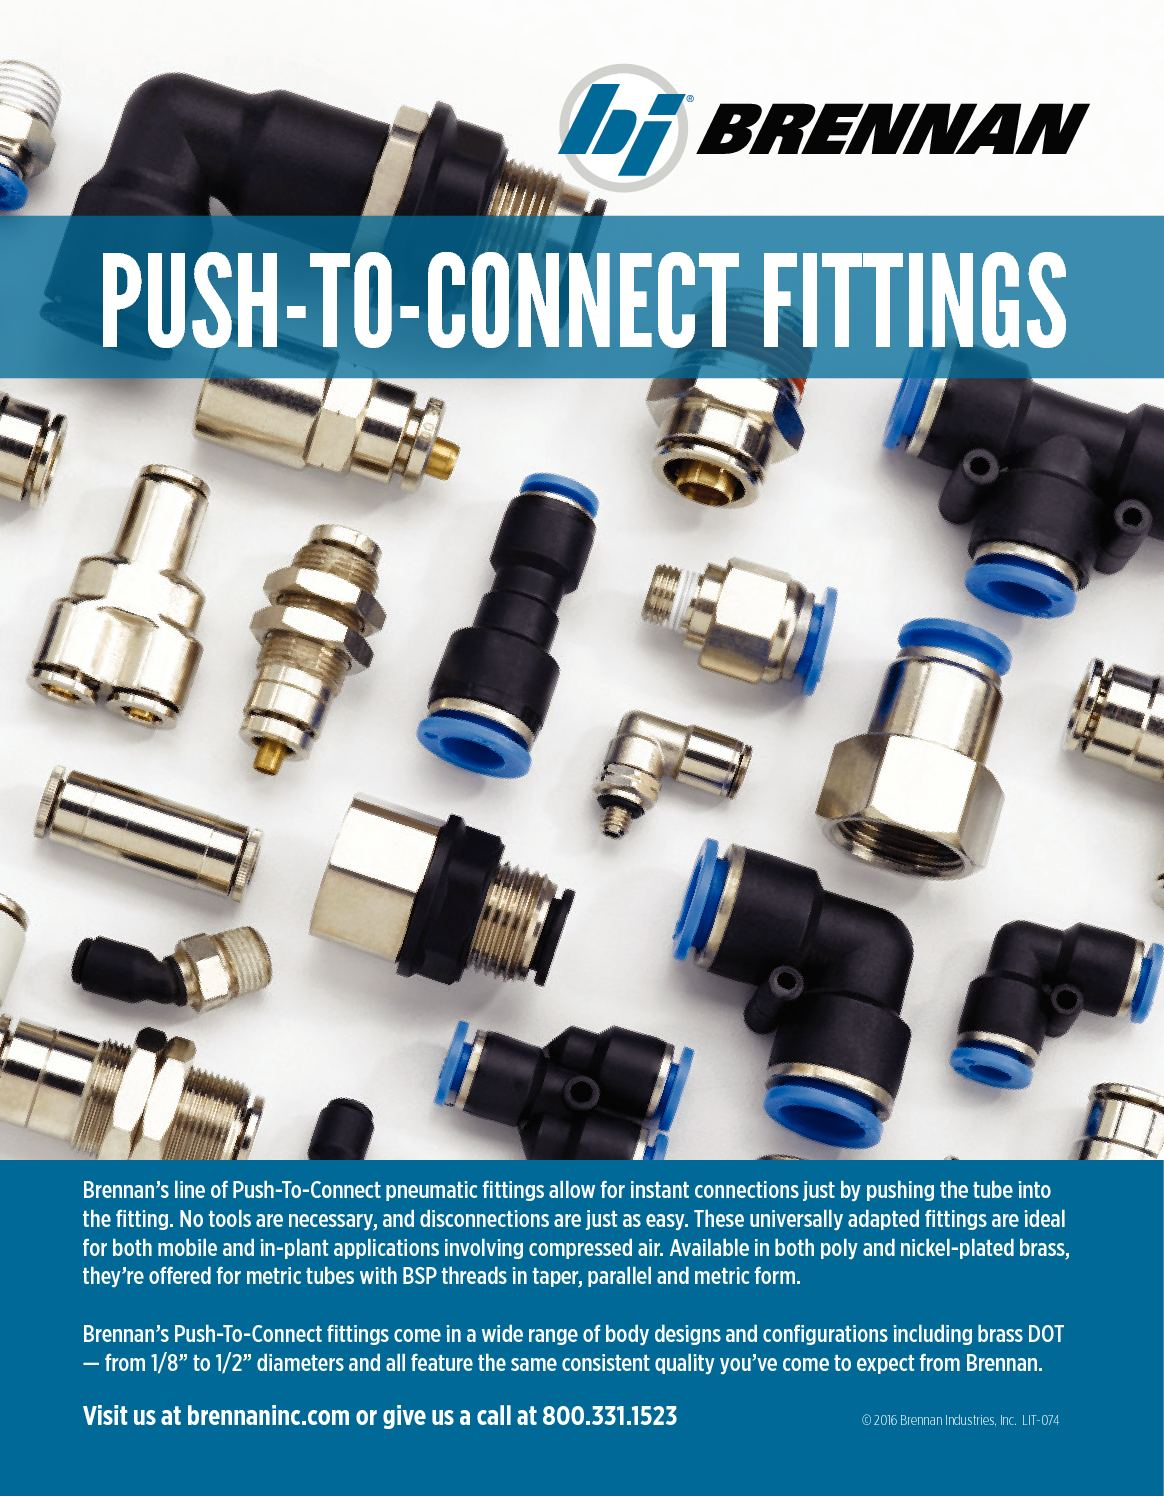 Calaméo - BRENNAN / PUSH-TO-CONNECT FITTINGS